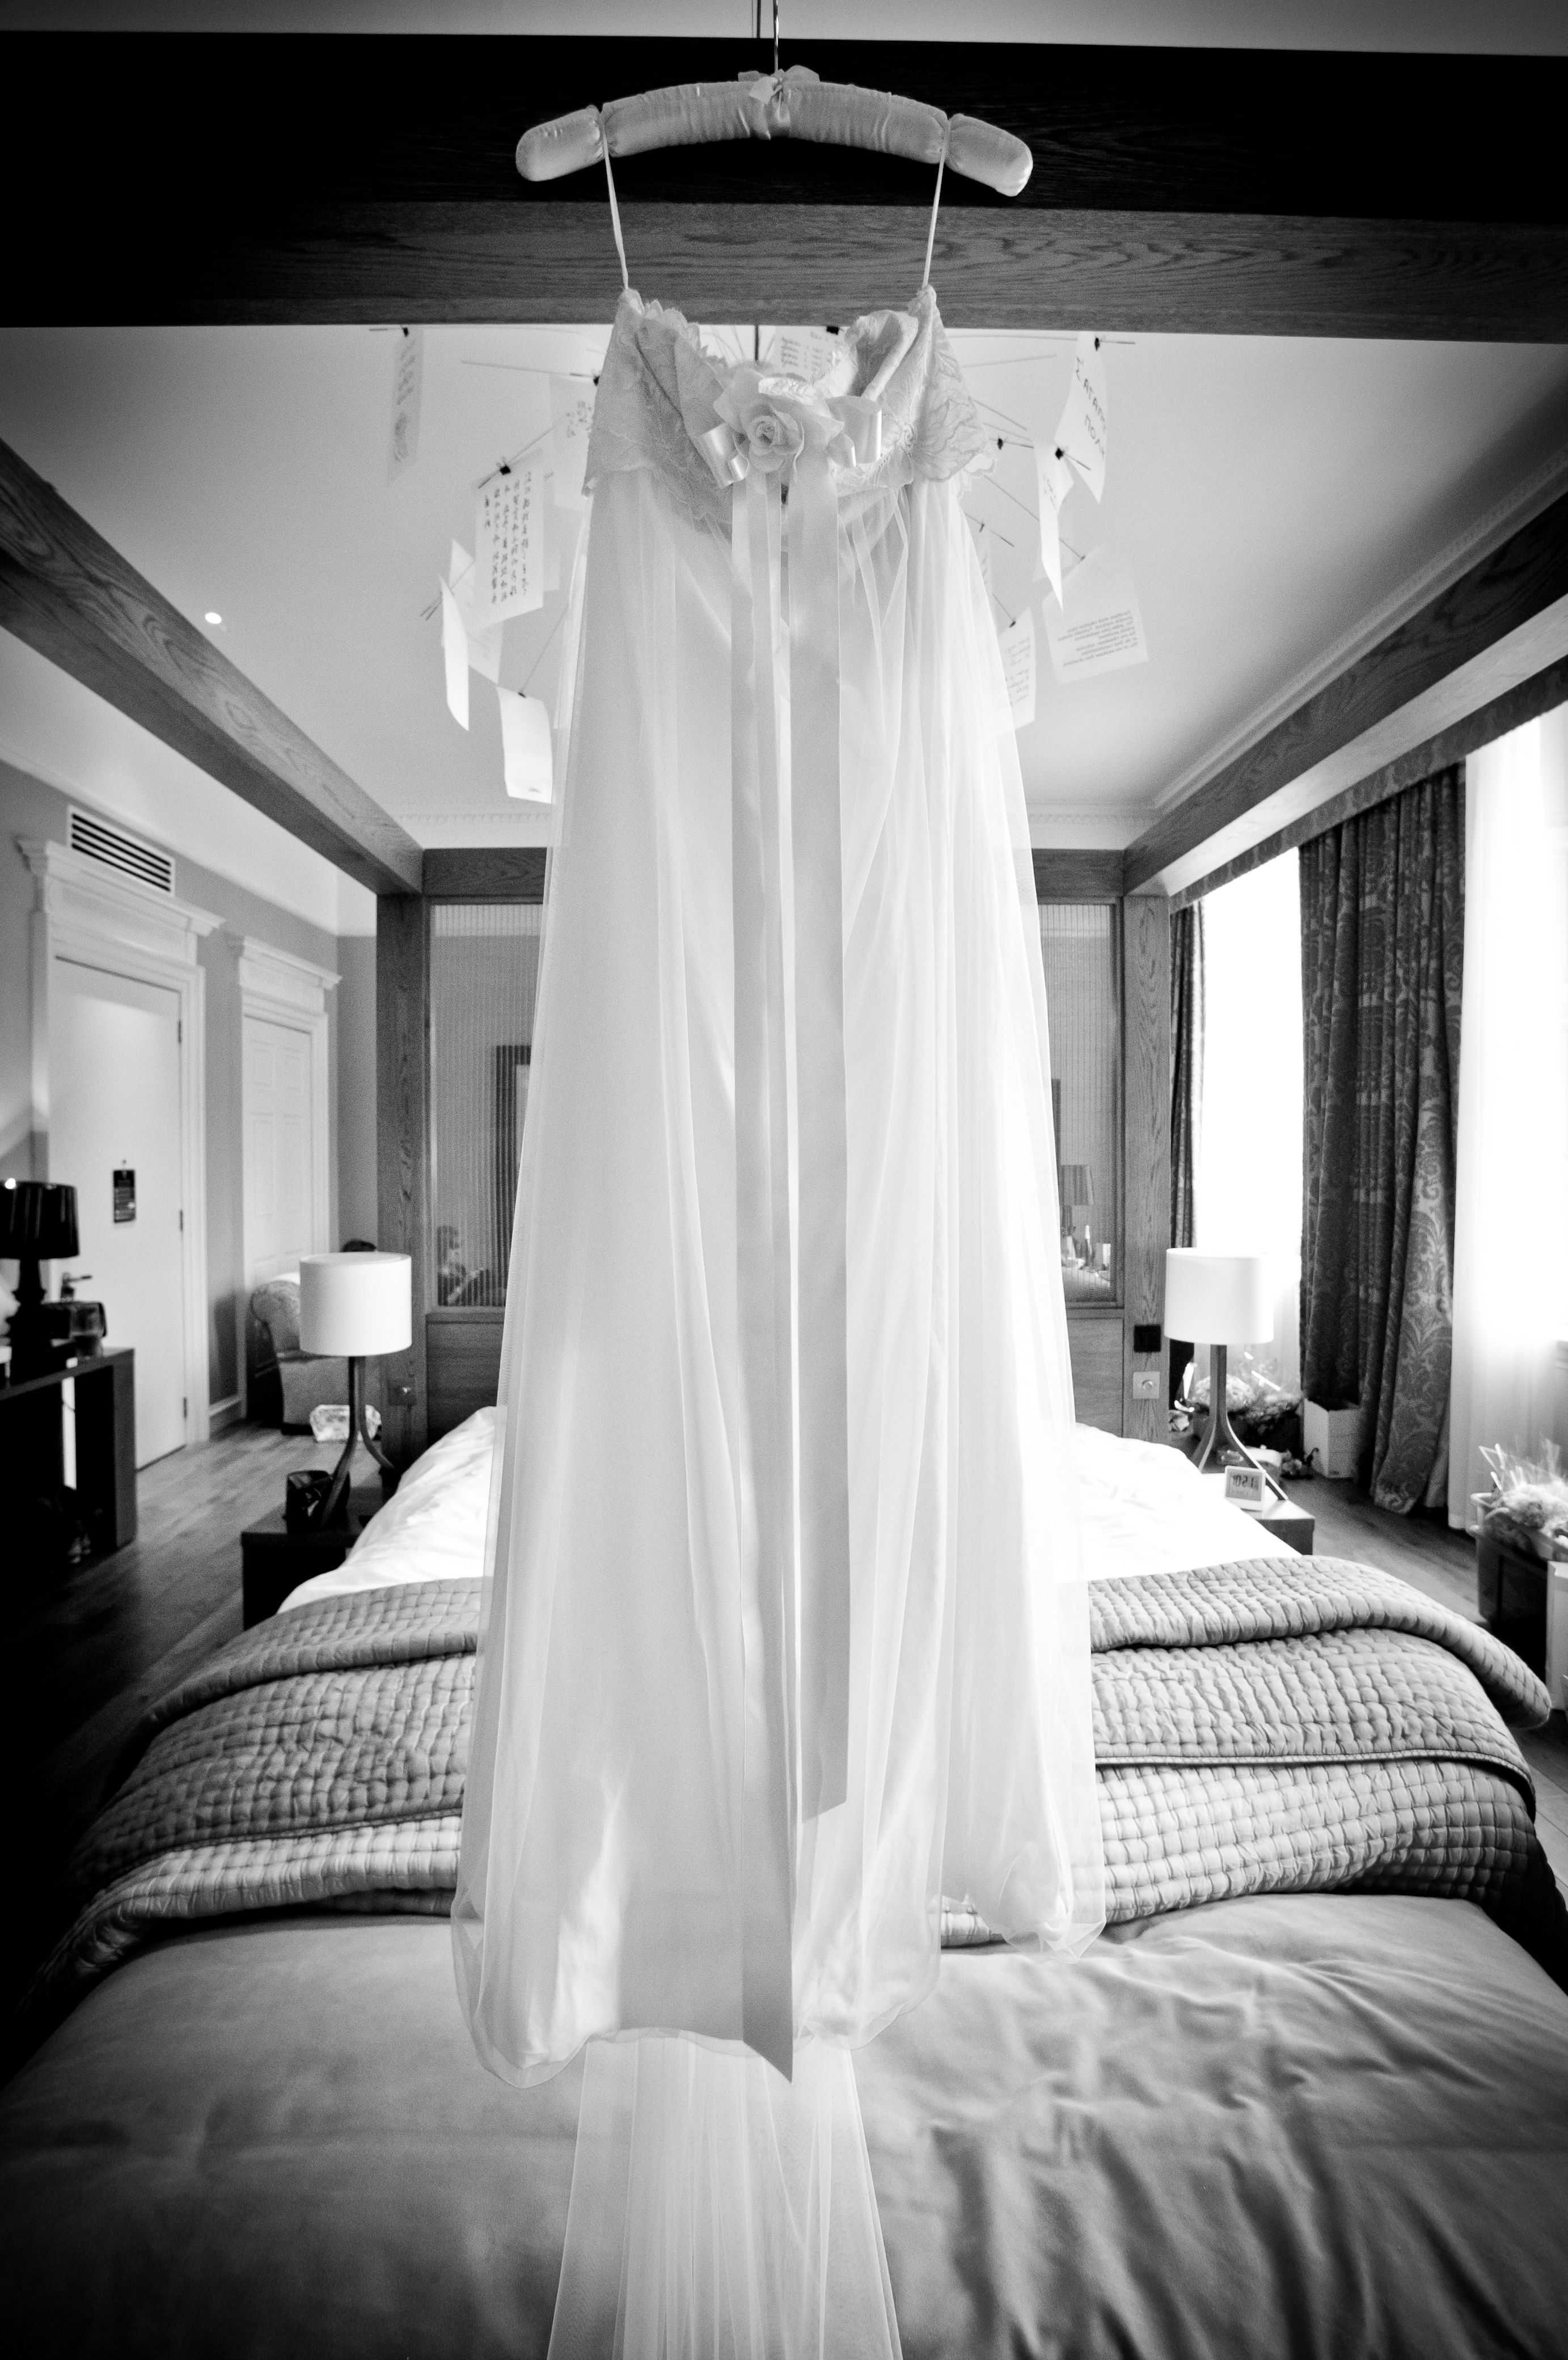 Real bride Natalie's 'Larissa' #wedding gown by Claire Pettibone http://bit.ly/Mm8V67 - Photo: Kevin Simm,  Cookietree Photography